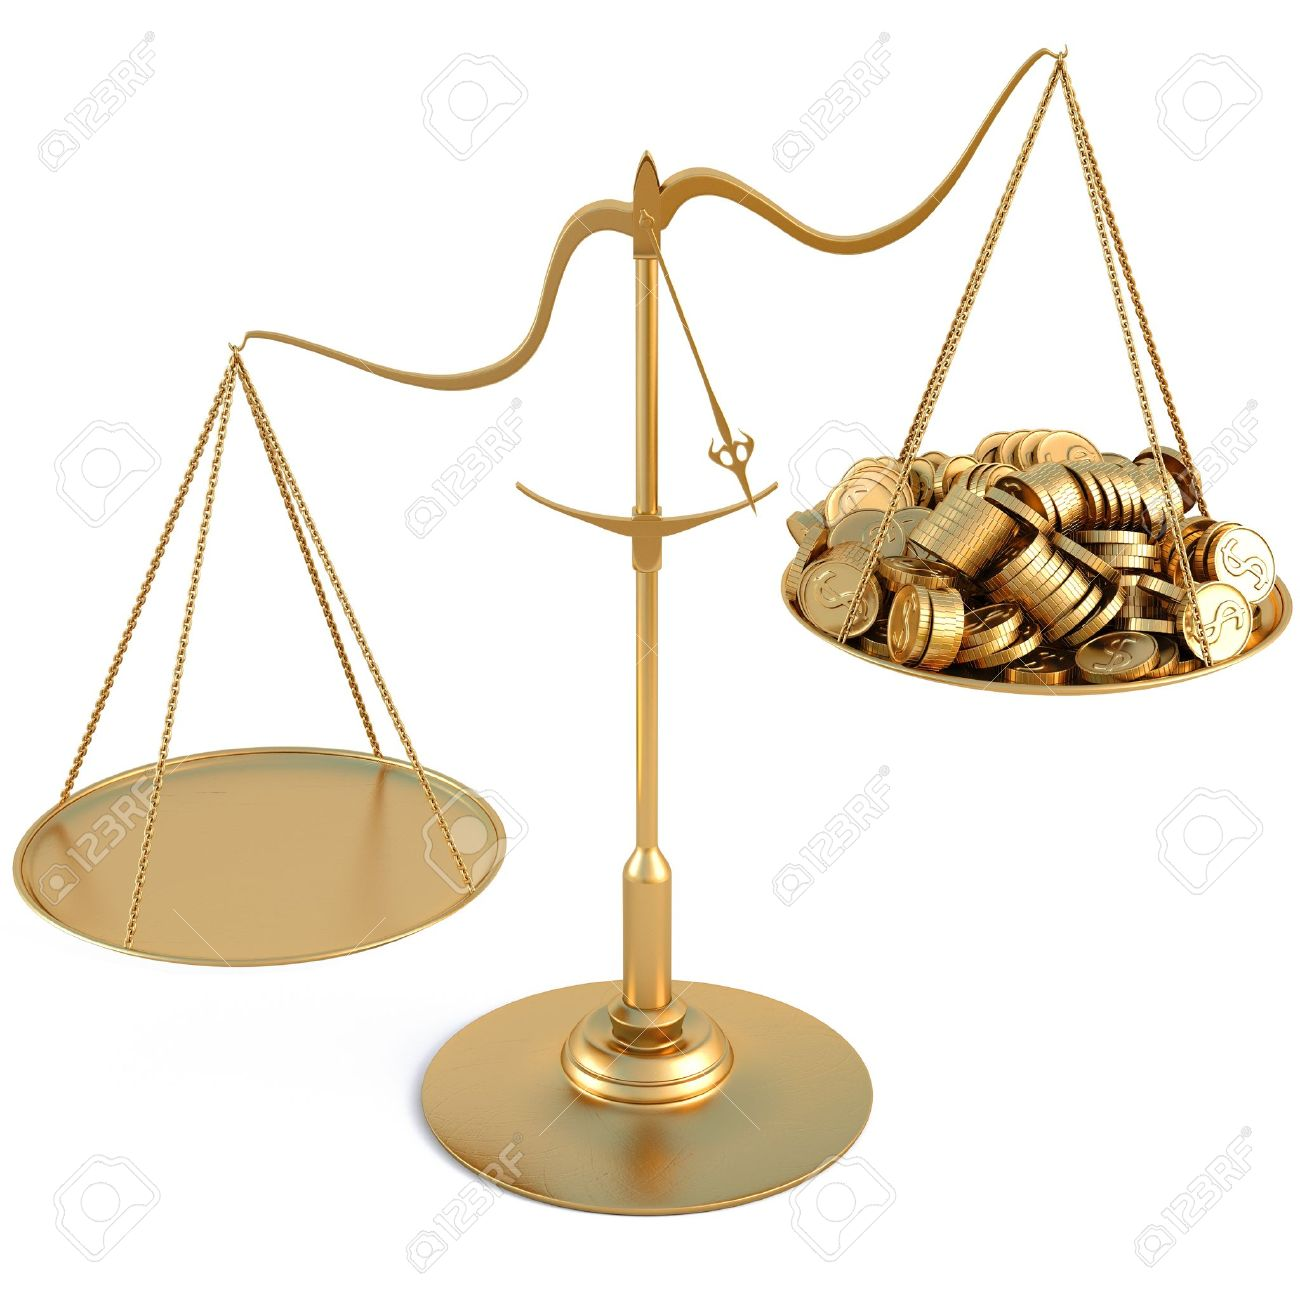 jewelry scales with a heap gold coins. isolated on white. Stock Photo - 10083441